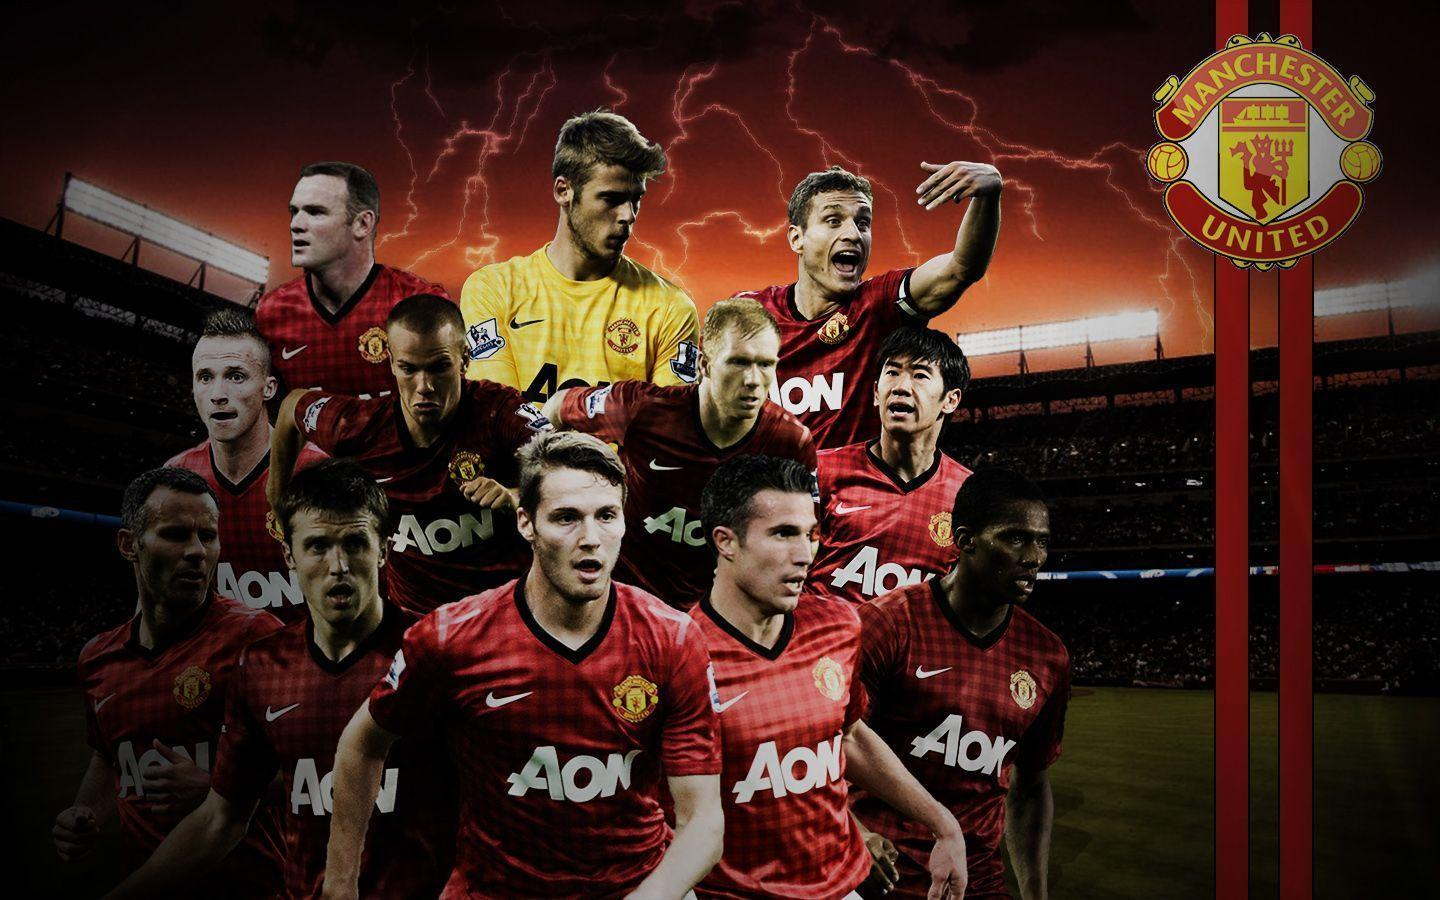 Manchester United HD Wallpapers 2017 - Wallpaper Cave